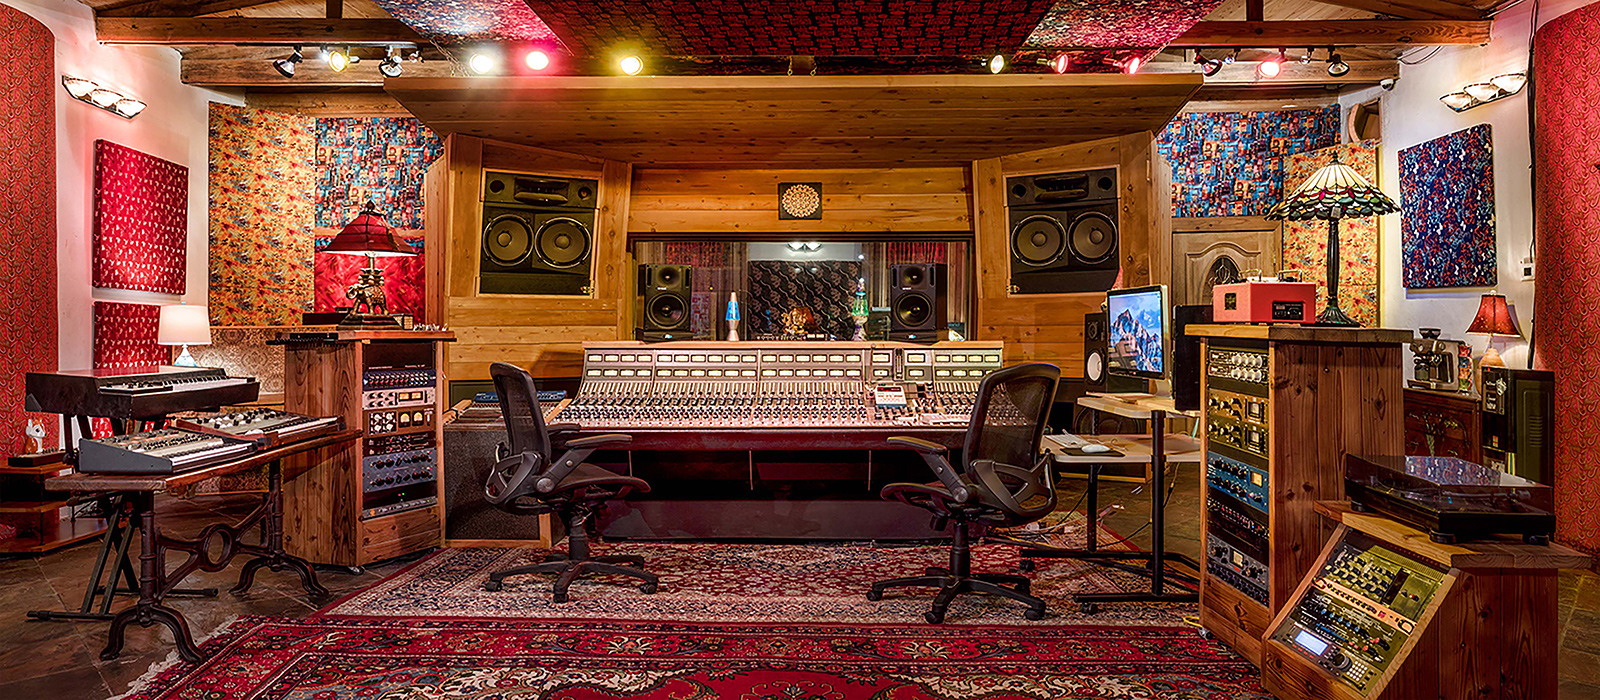 1600x700-studio-adobe-contolroom-front